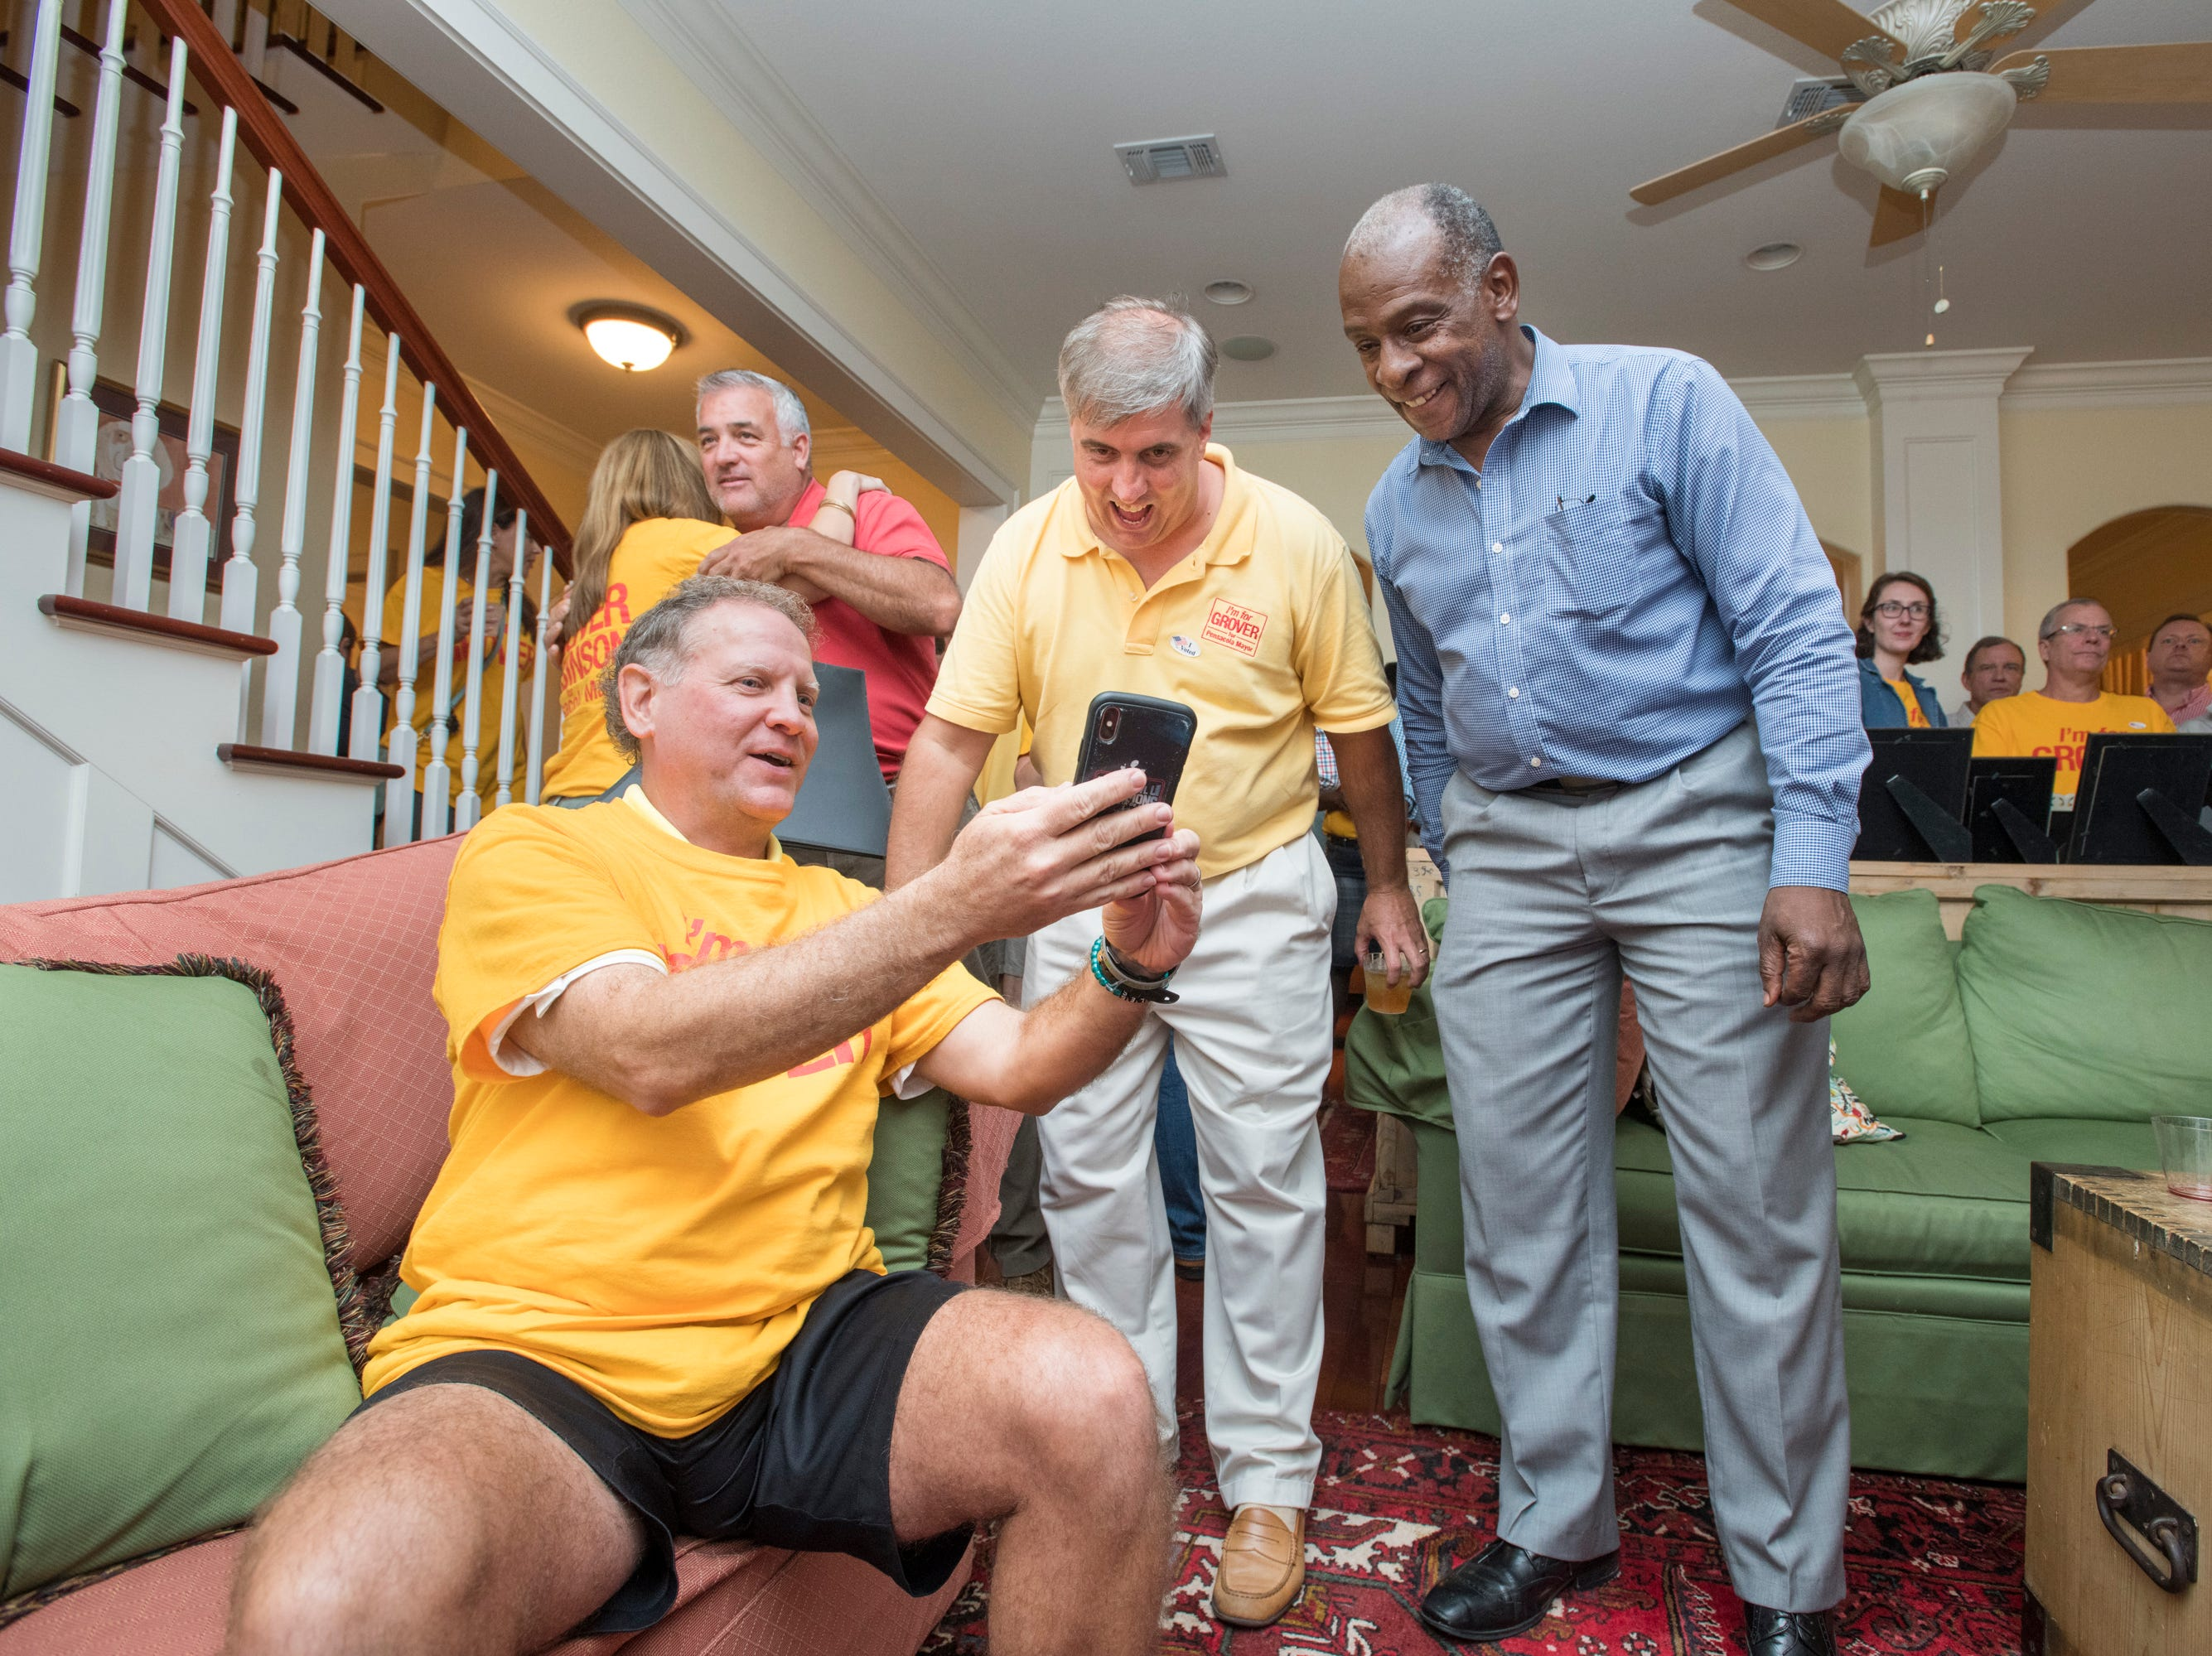 Grover Robinson, center, and supporters check the Penscola Mayoral race returns on Election Night in Pensacola on Tuesday, November 6, 2018.